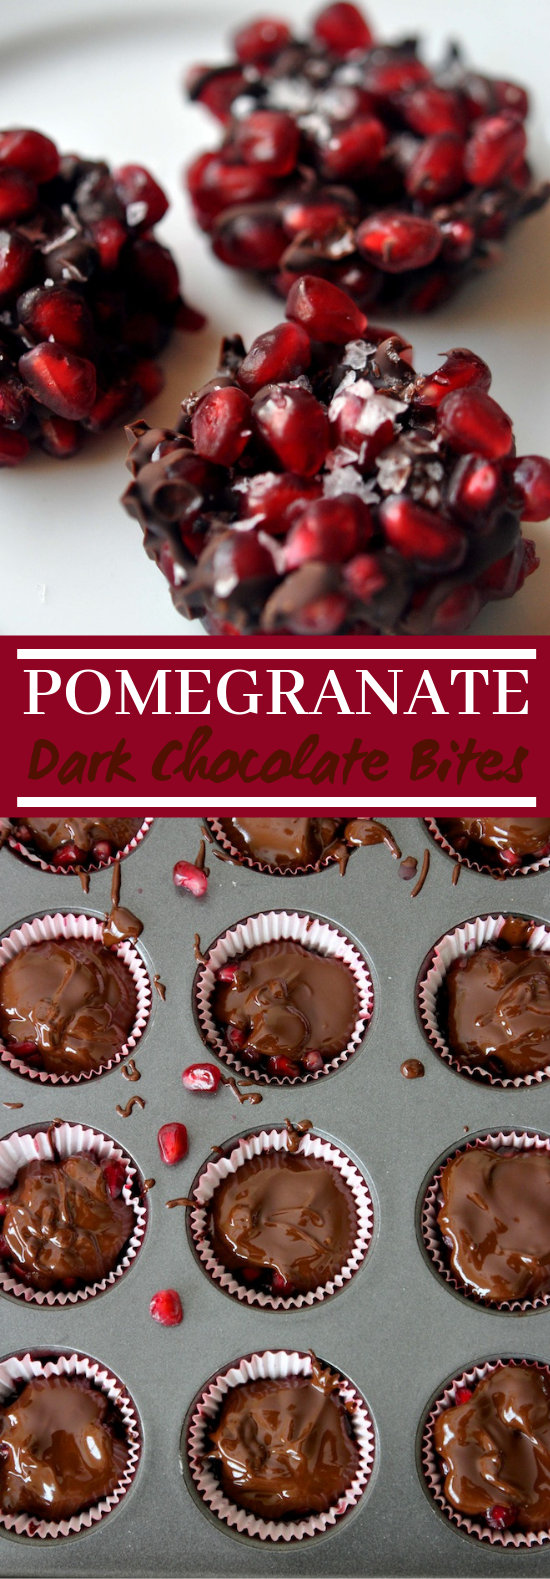 Pomegranate & Dark Chocolate Bites #chocolate #desserts